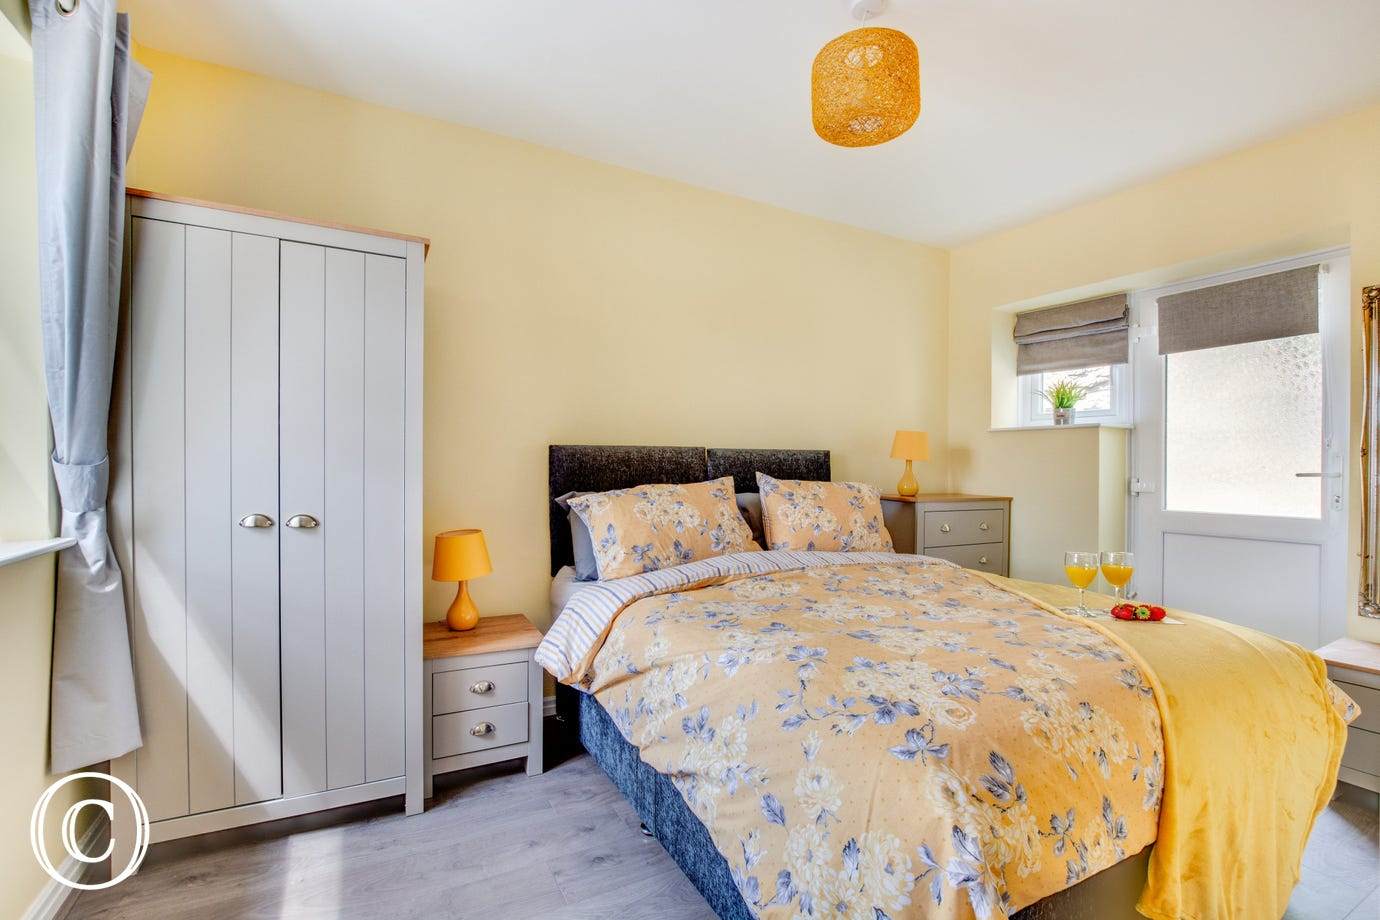 Master bedroom, nice and light and airy